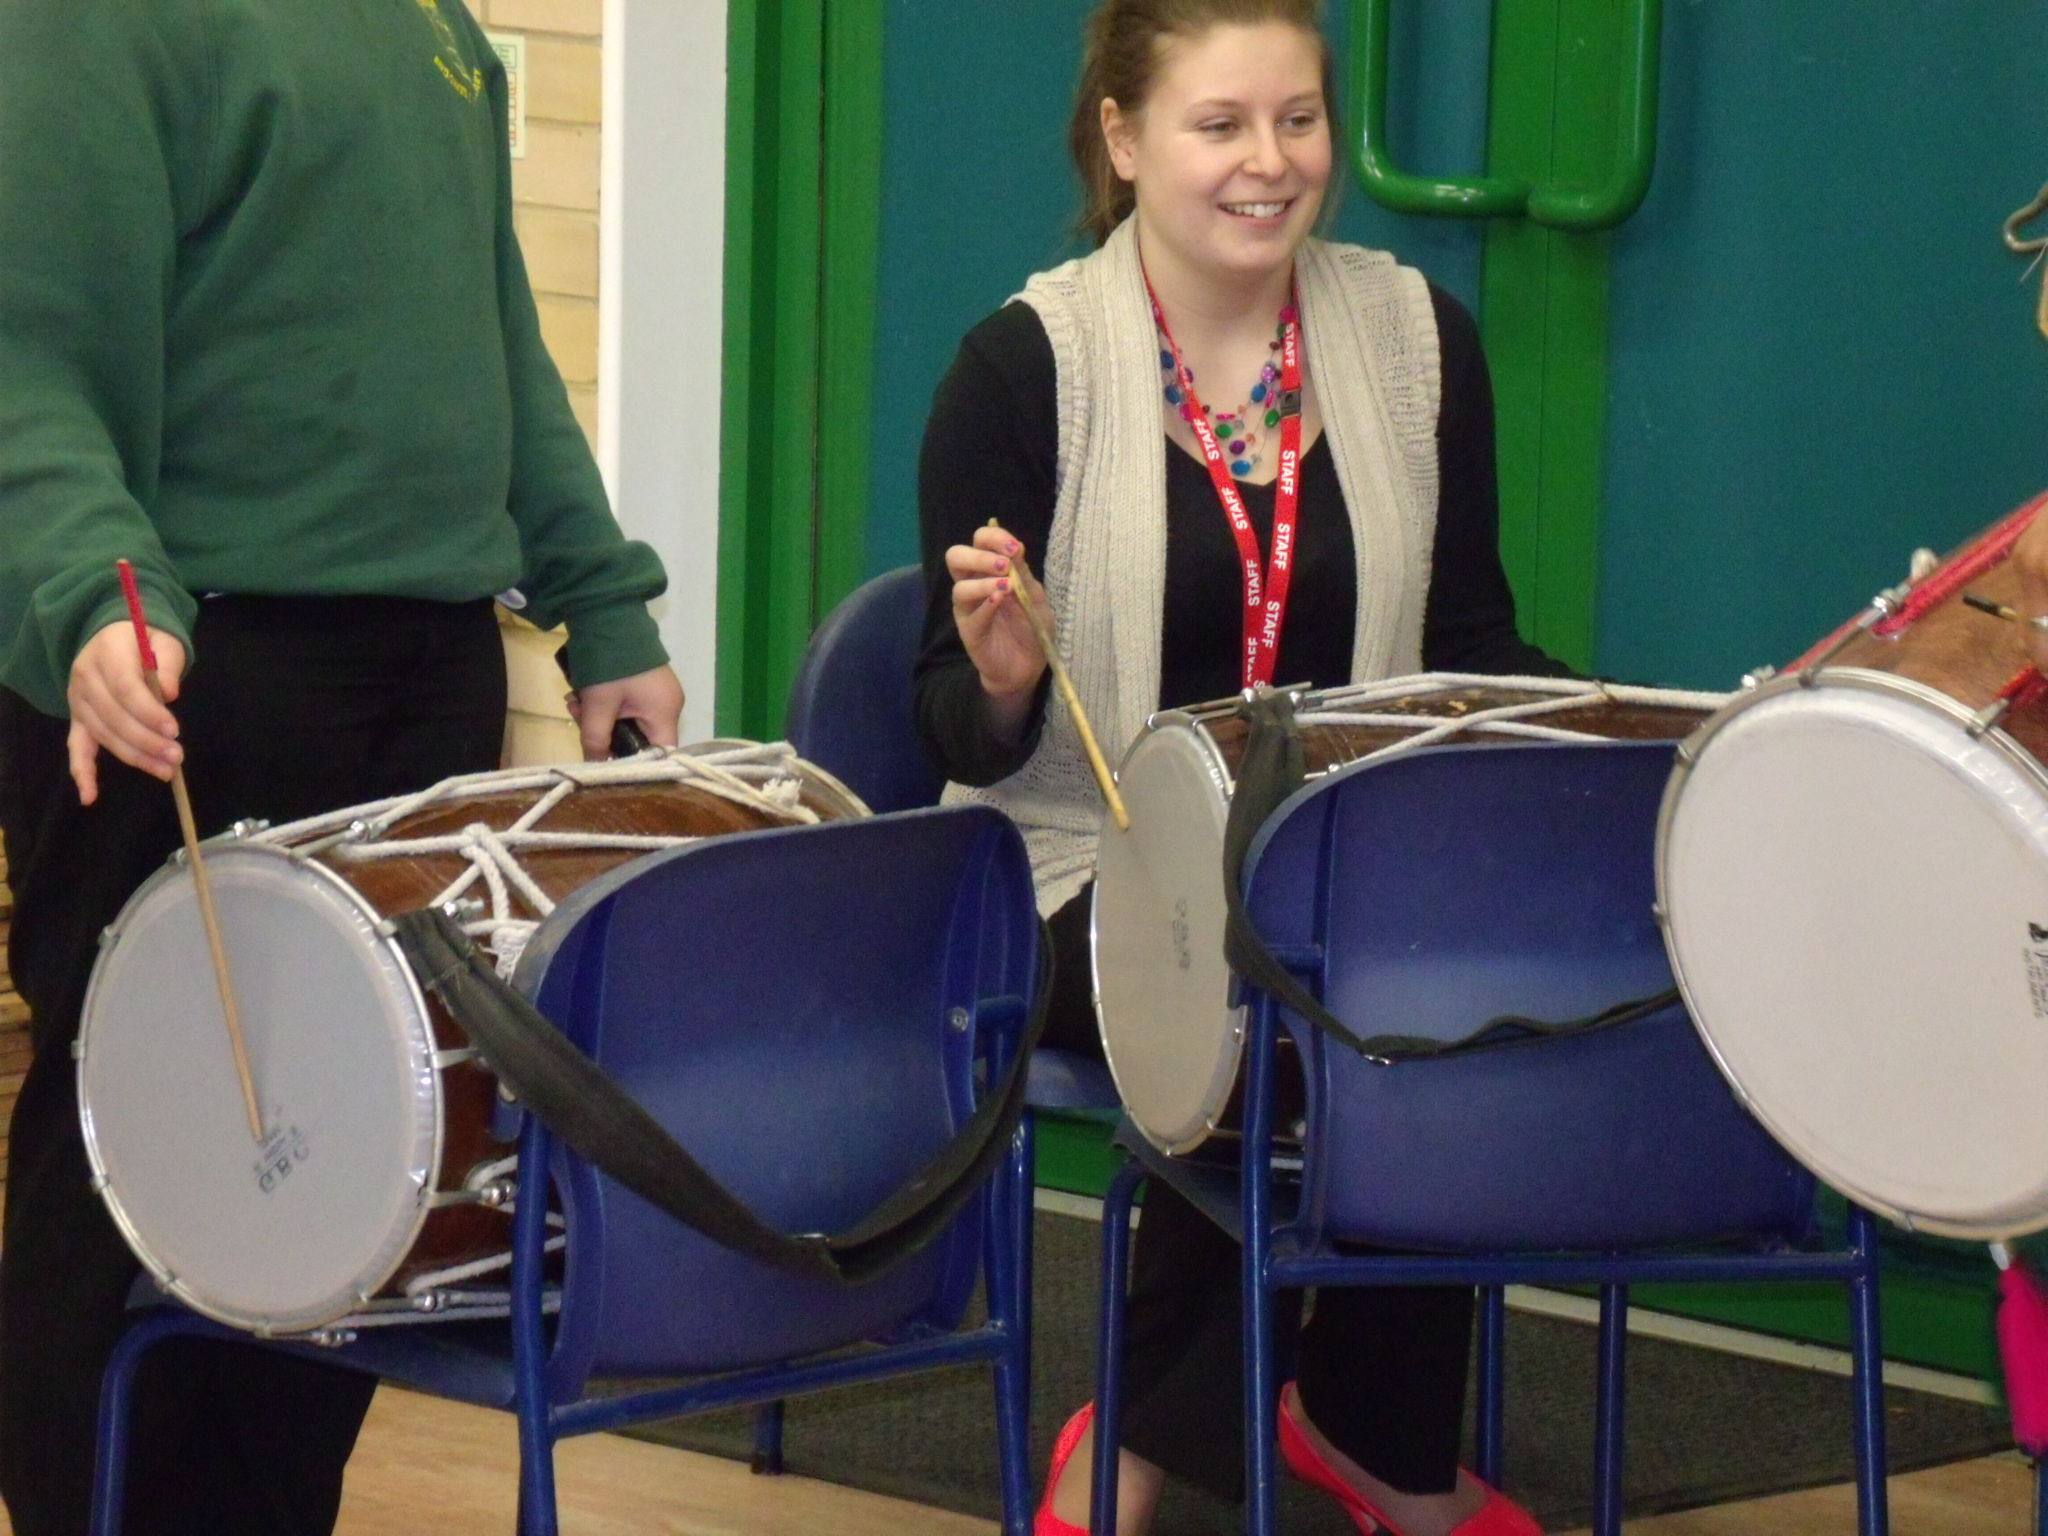 Teacher learning how to play indian drum in school hall on chair